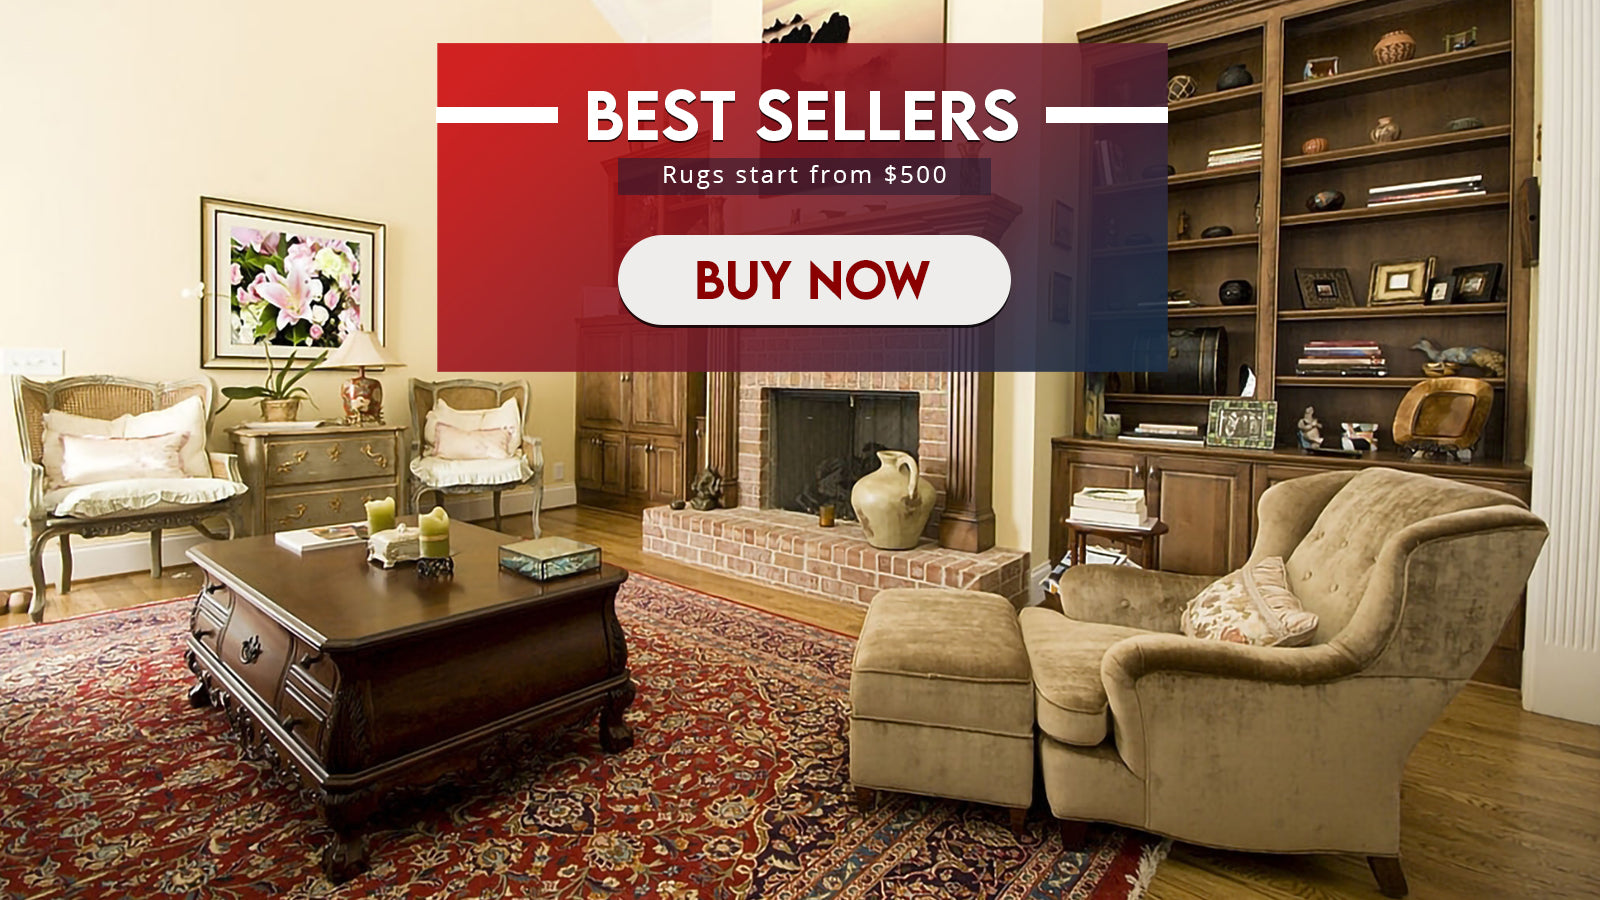 Persian Area Rug | Best sellers at Rugknots